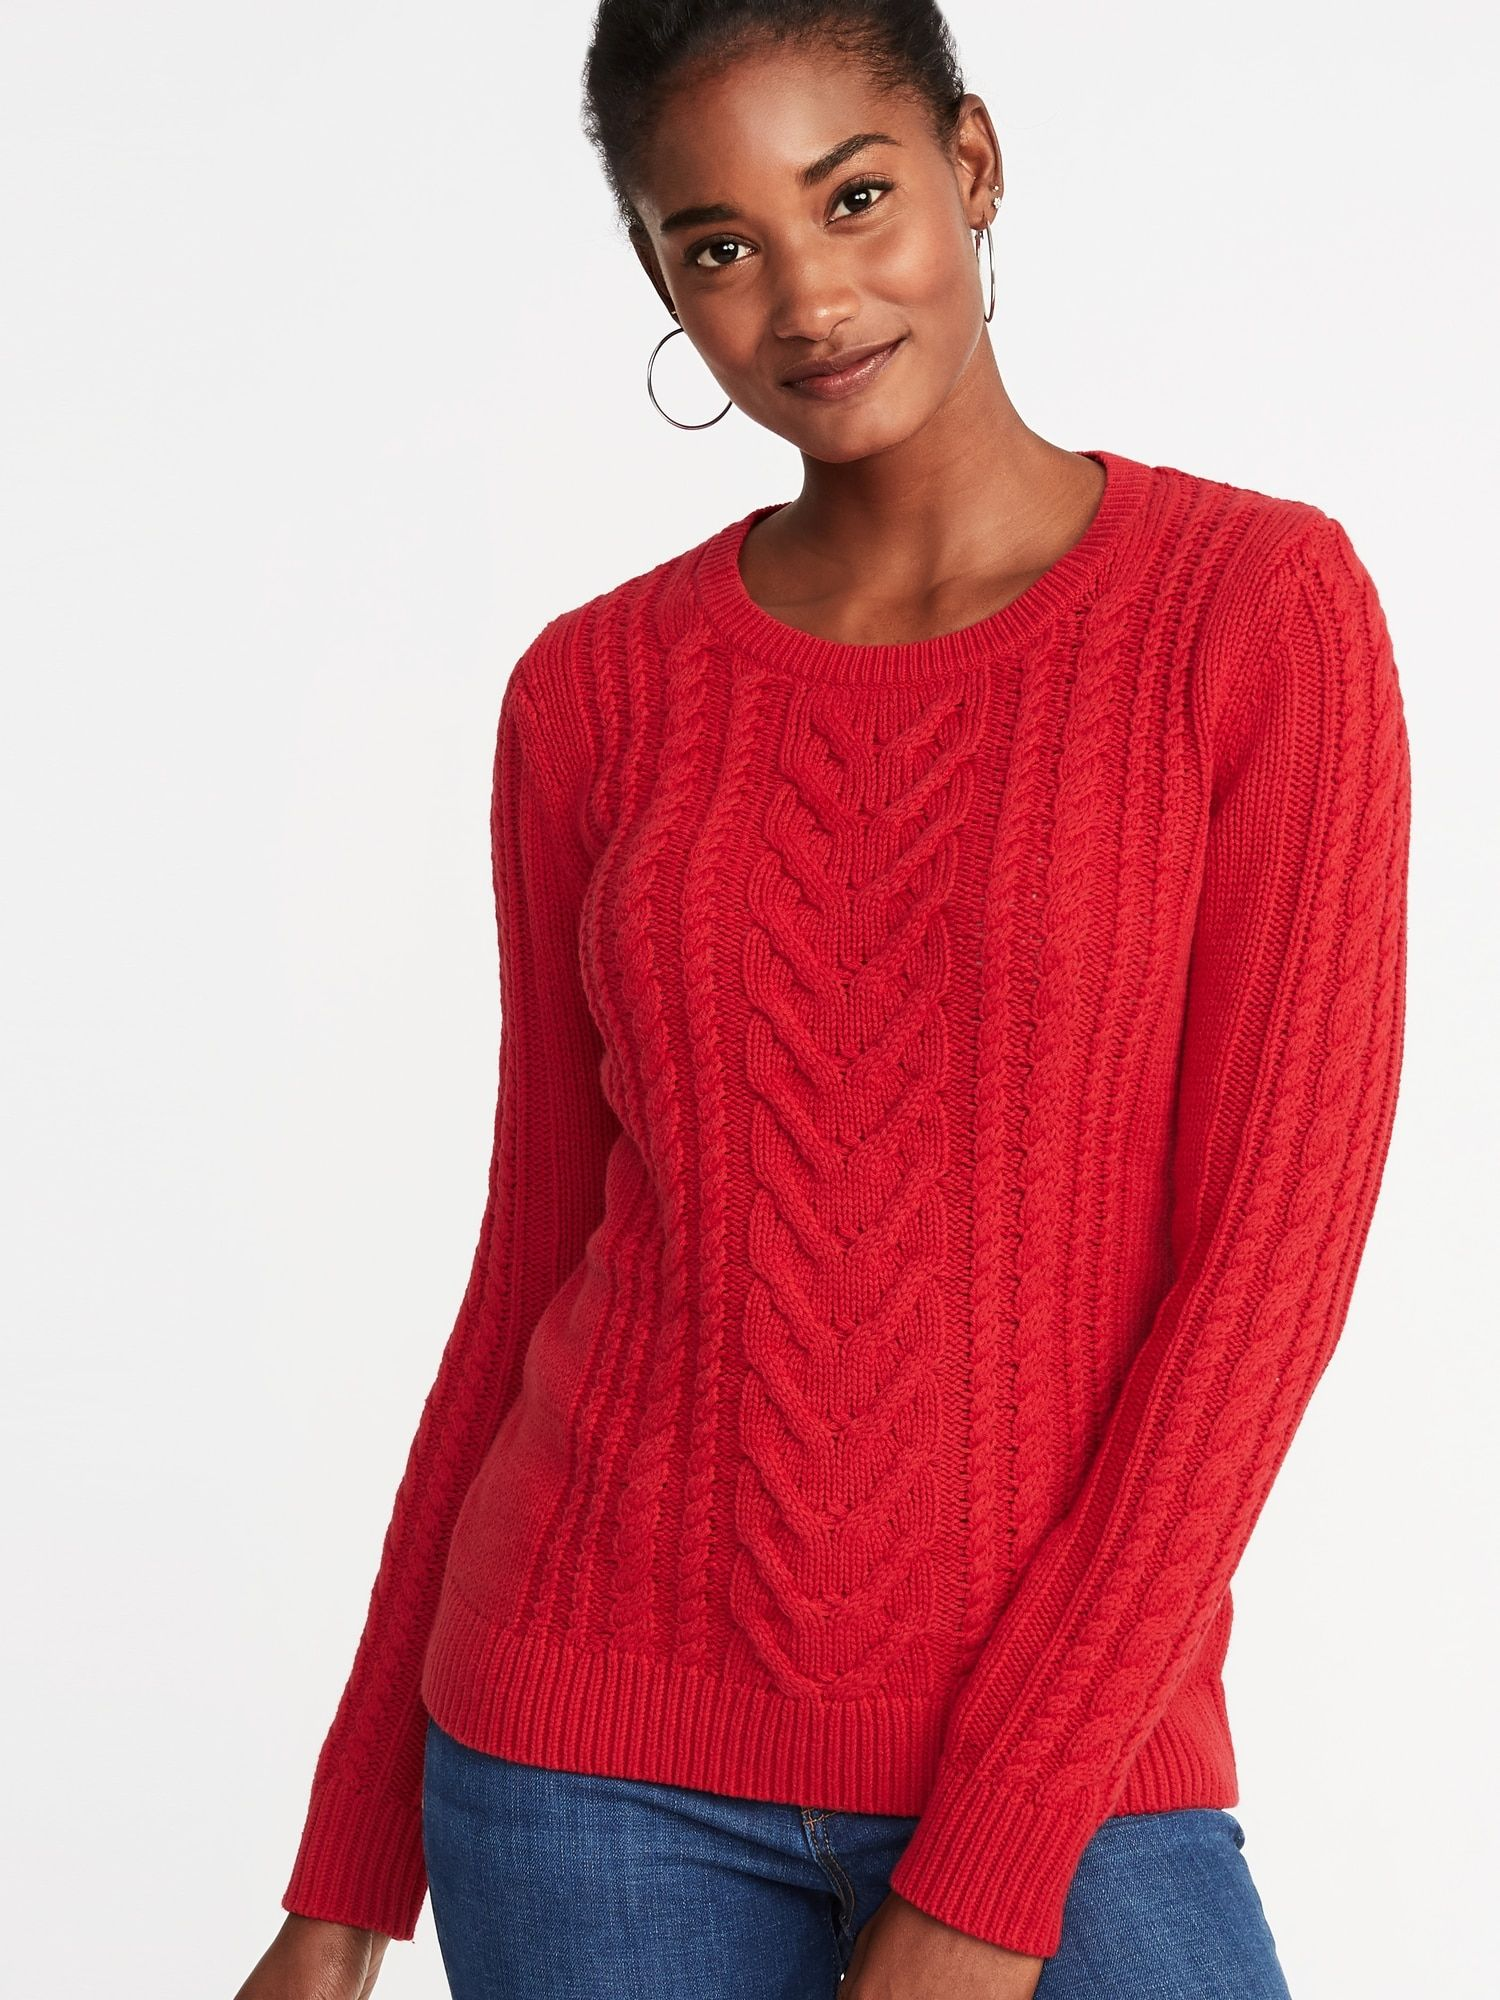 533b6e8782 Cable-Knit Crew-Neck Sweater for Women